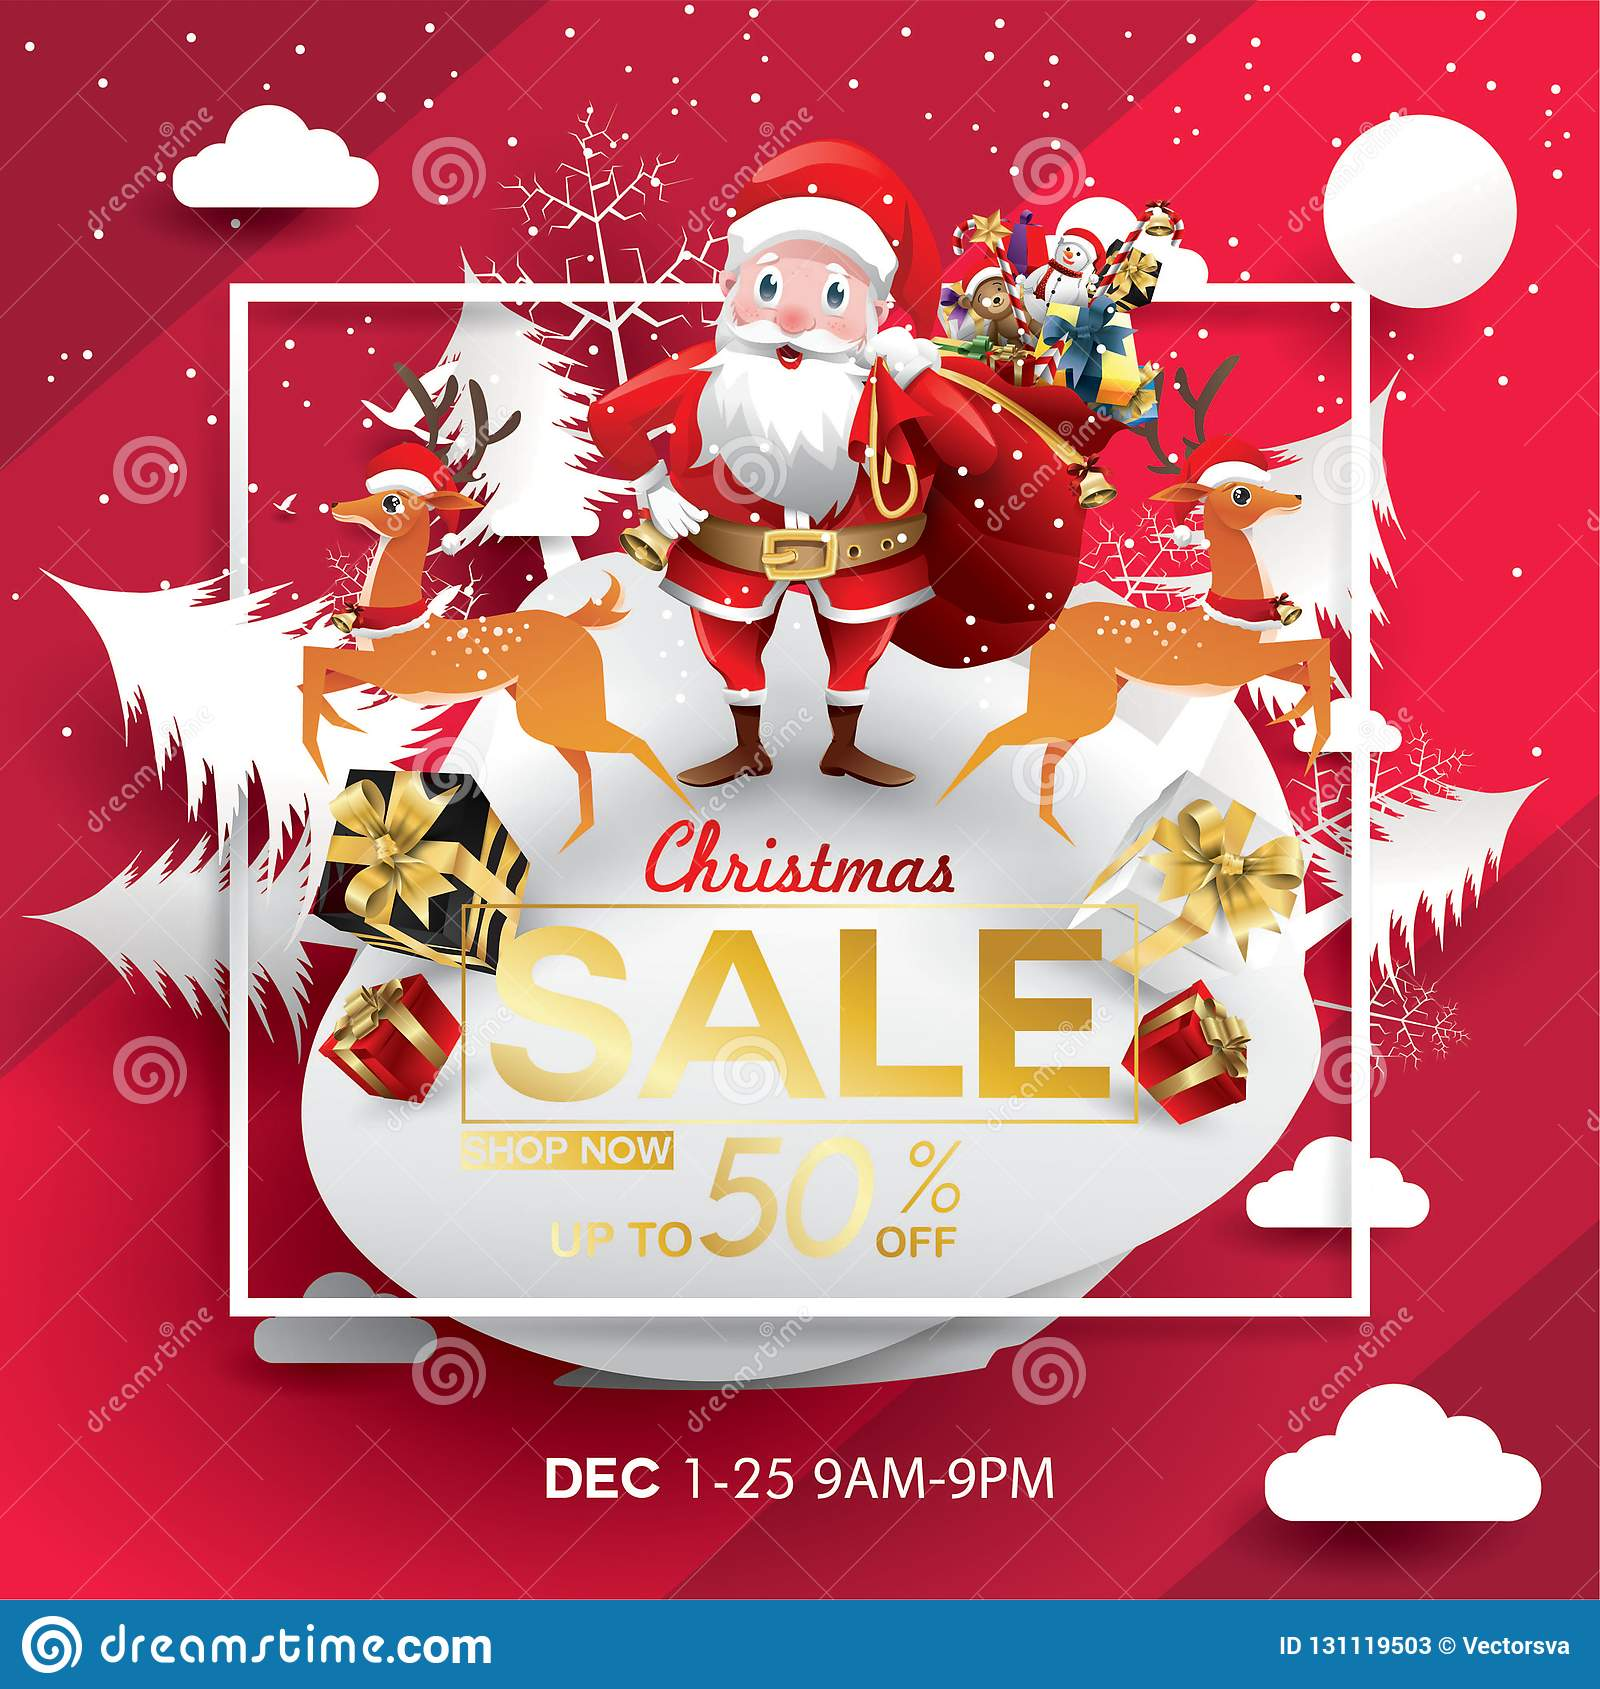 Christmas Sale Season Design Template Paper Art And Digital Craft